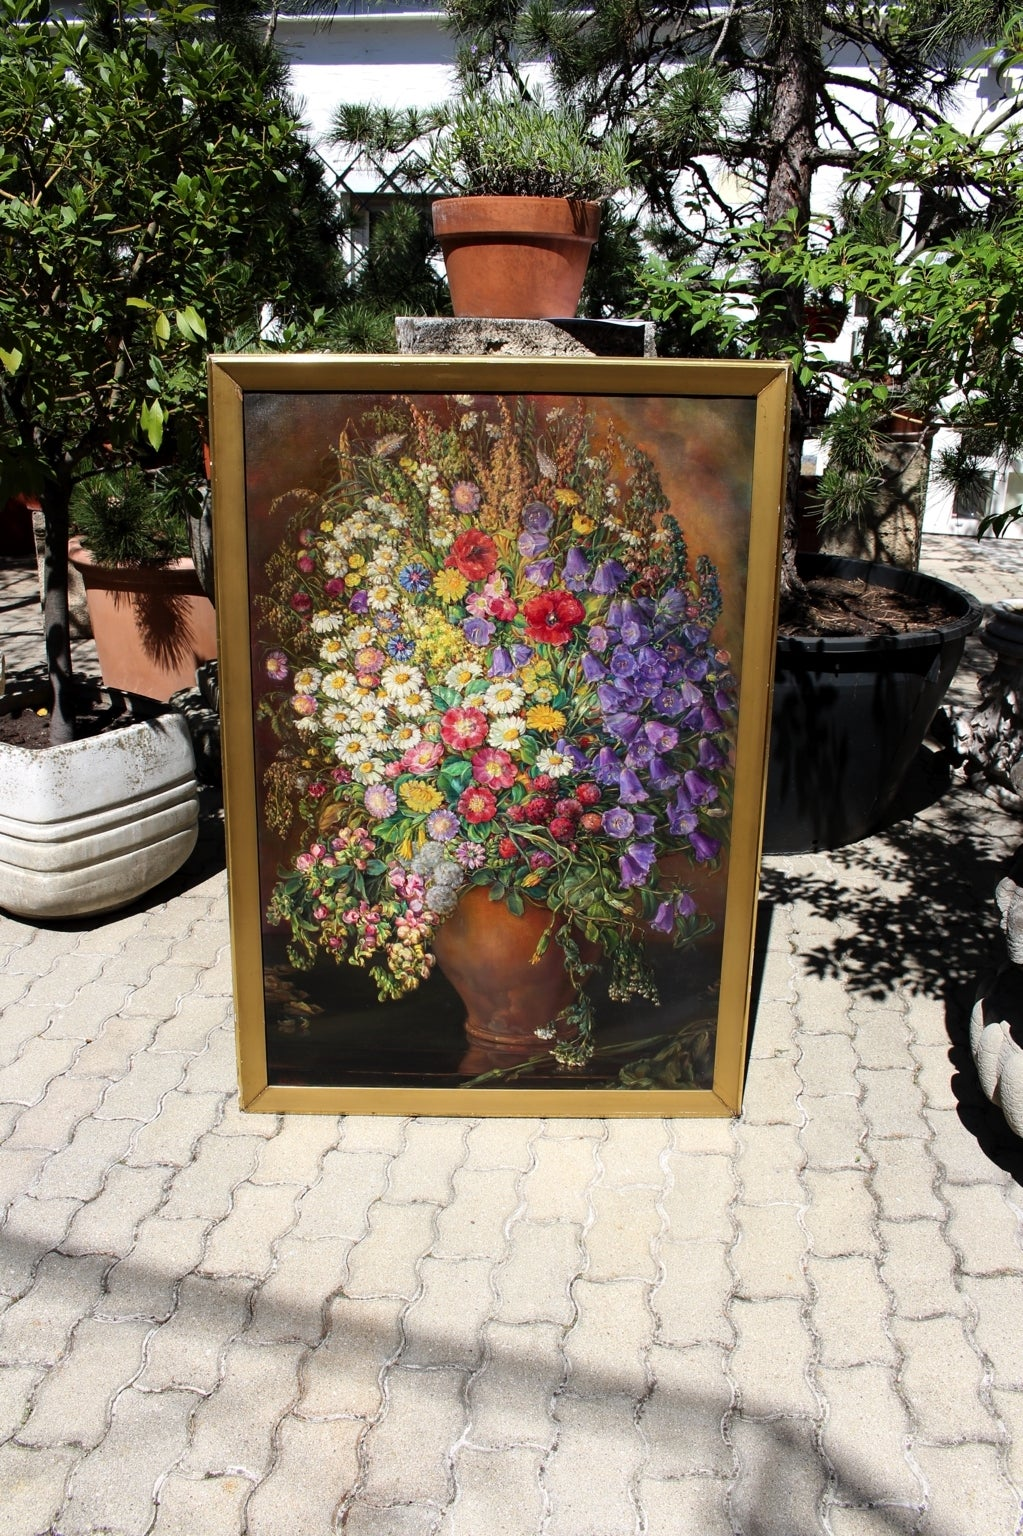 Painted Art Deco Vintage Painting Oil on Canvas Field Flowers by Emil Fiala 1933, Vienna For Sale